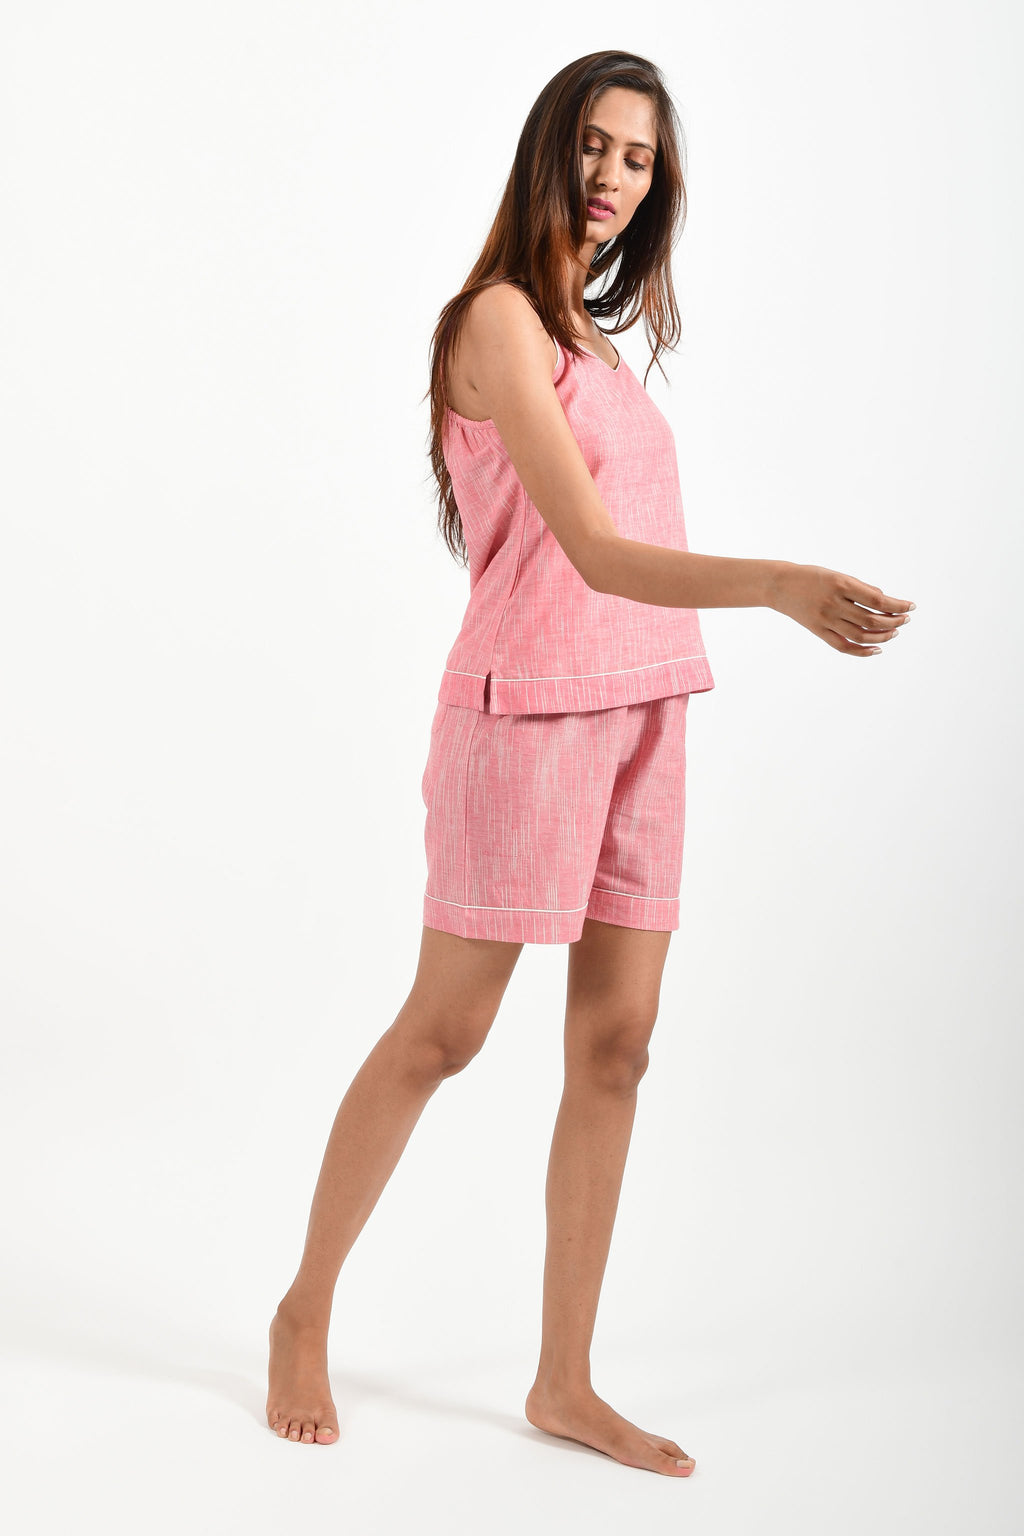 Side pose of an Indian female womenswear fashion model in azo-free space dyed pink handspun and handwoven khadi cotton spaghetti top and boxers by Cotton Rack.